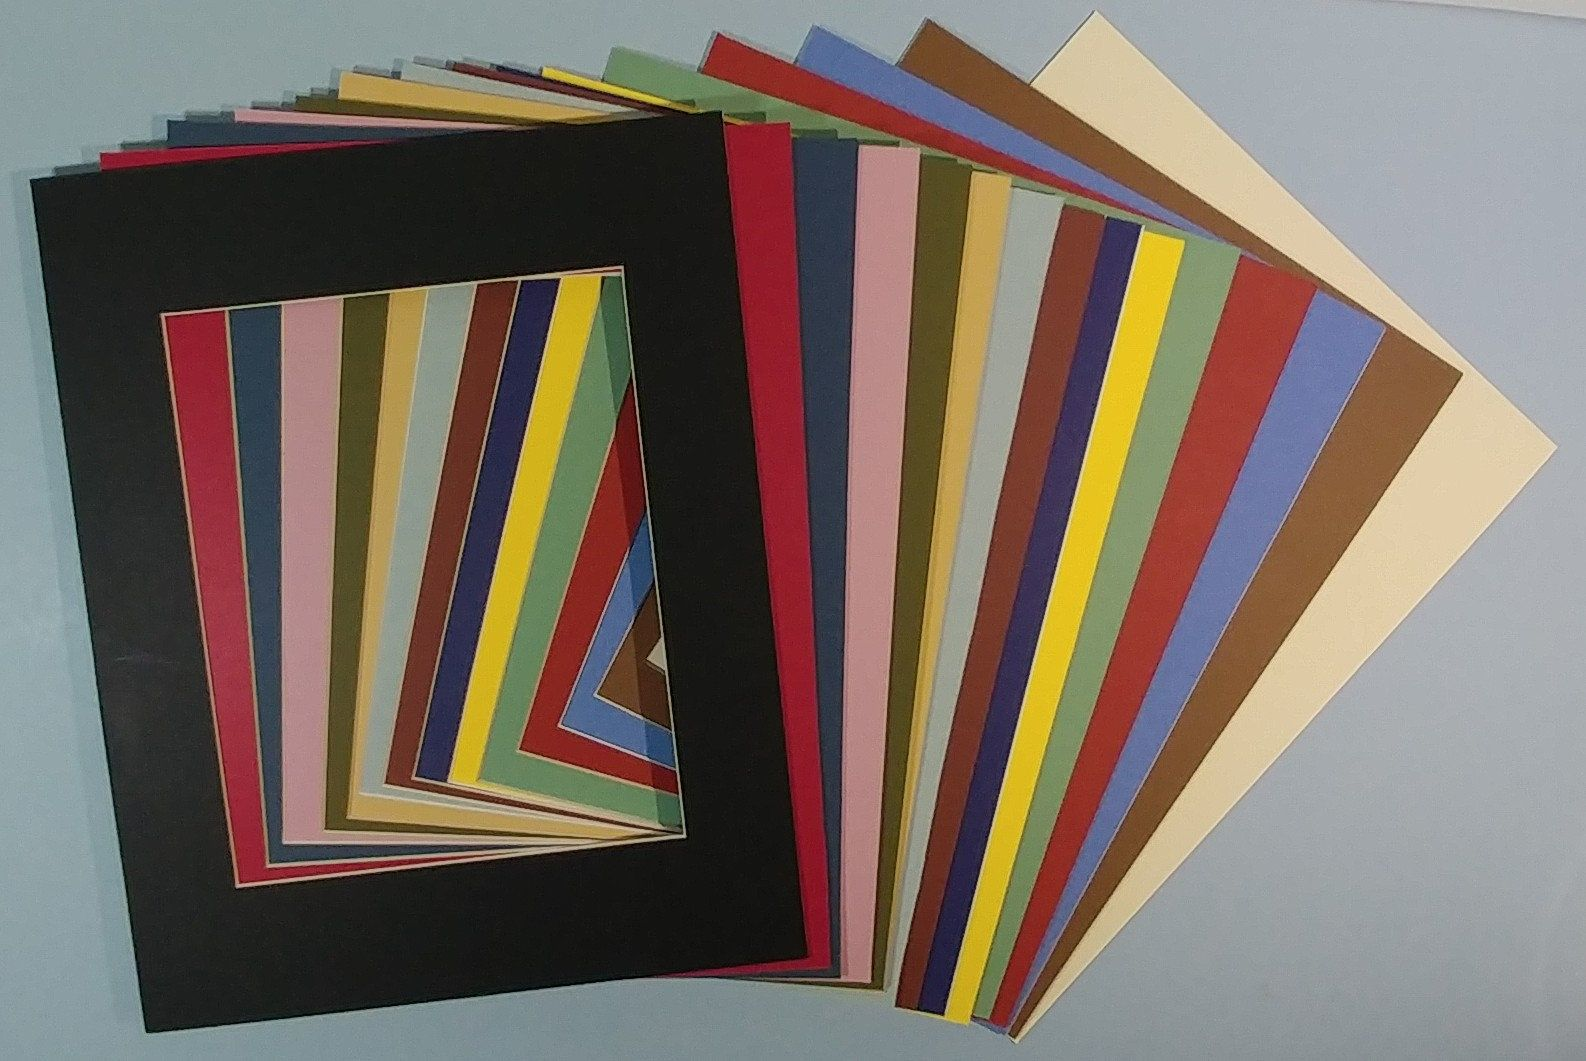 15pc 11x14 Precut Mat Board Assorted Mix Color Variety Artist Etsy In 2020 Color Mixing Artwork Display Craft Supplies